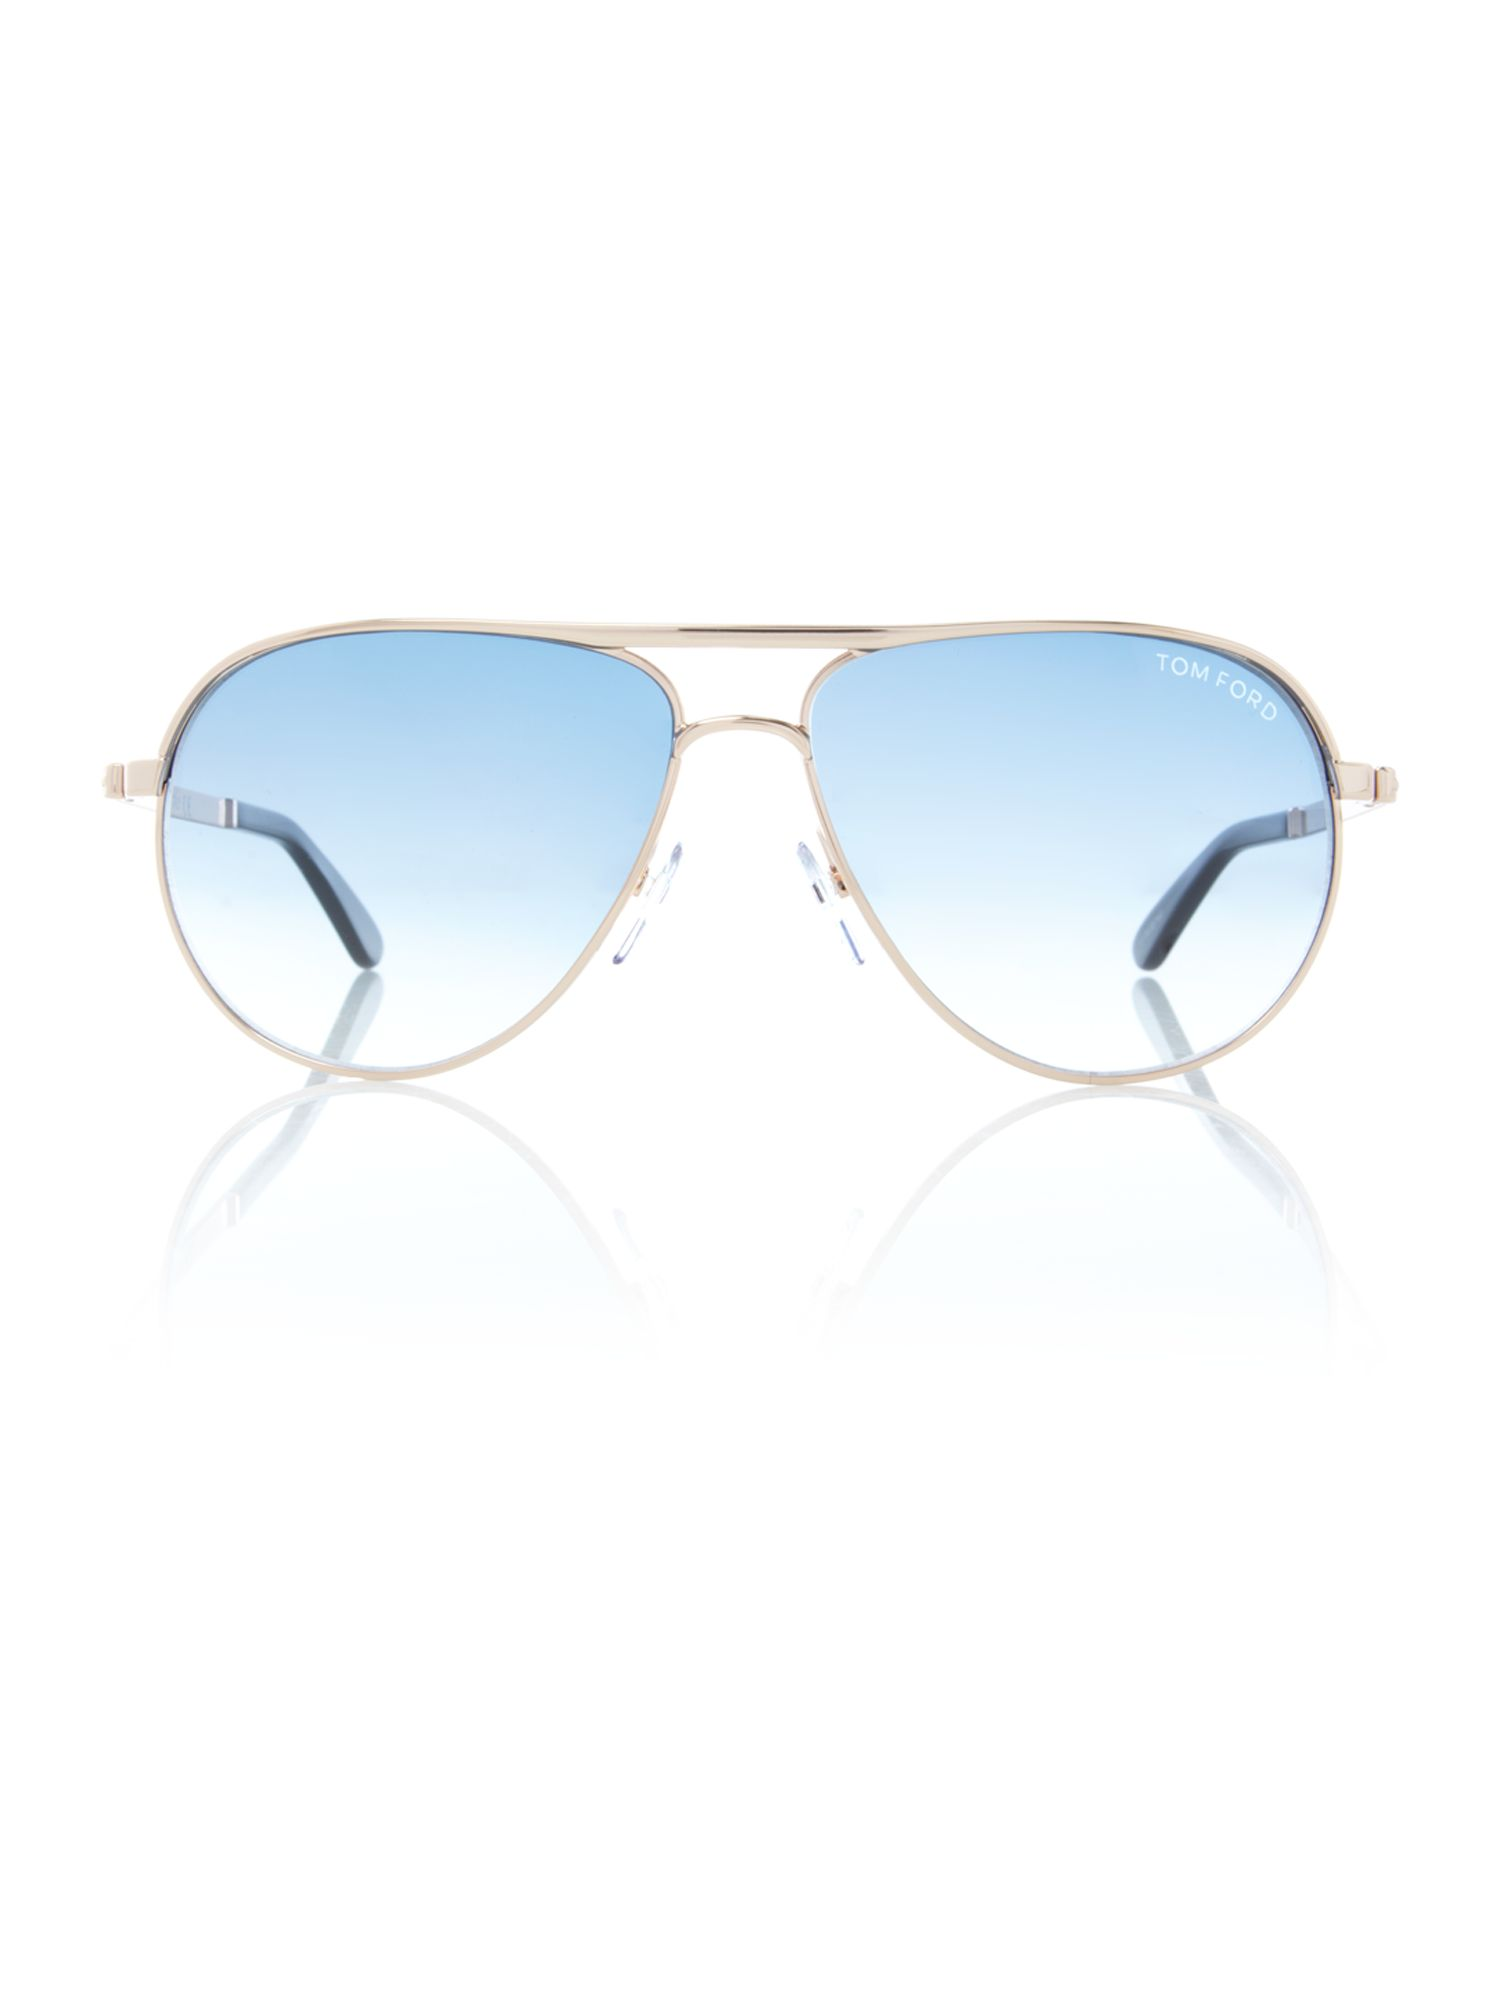 Unisex FT0144 Marko Sunglasses